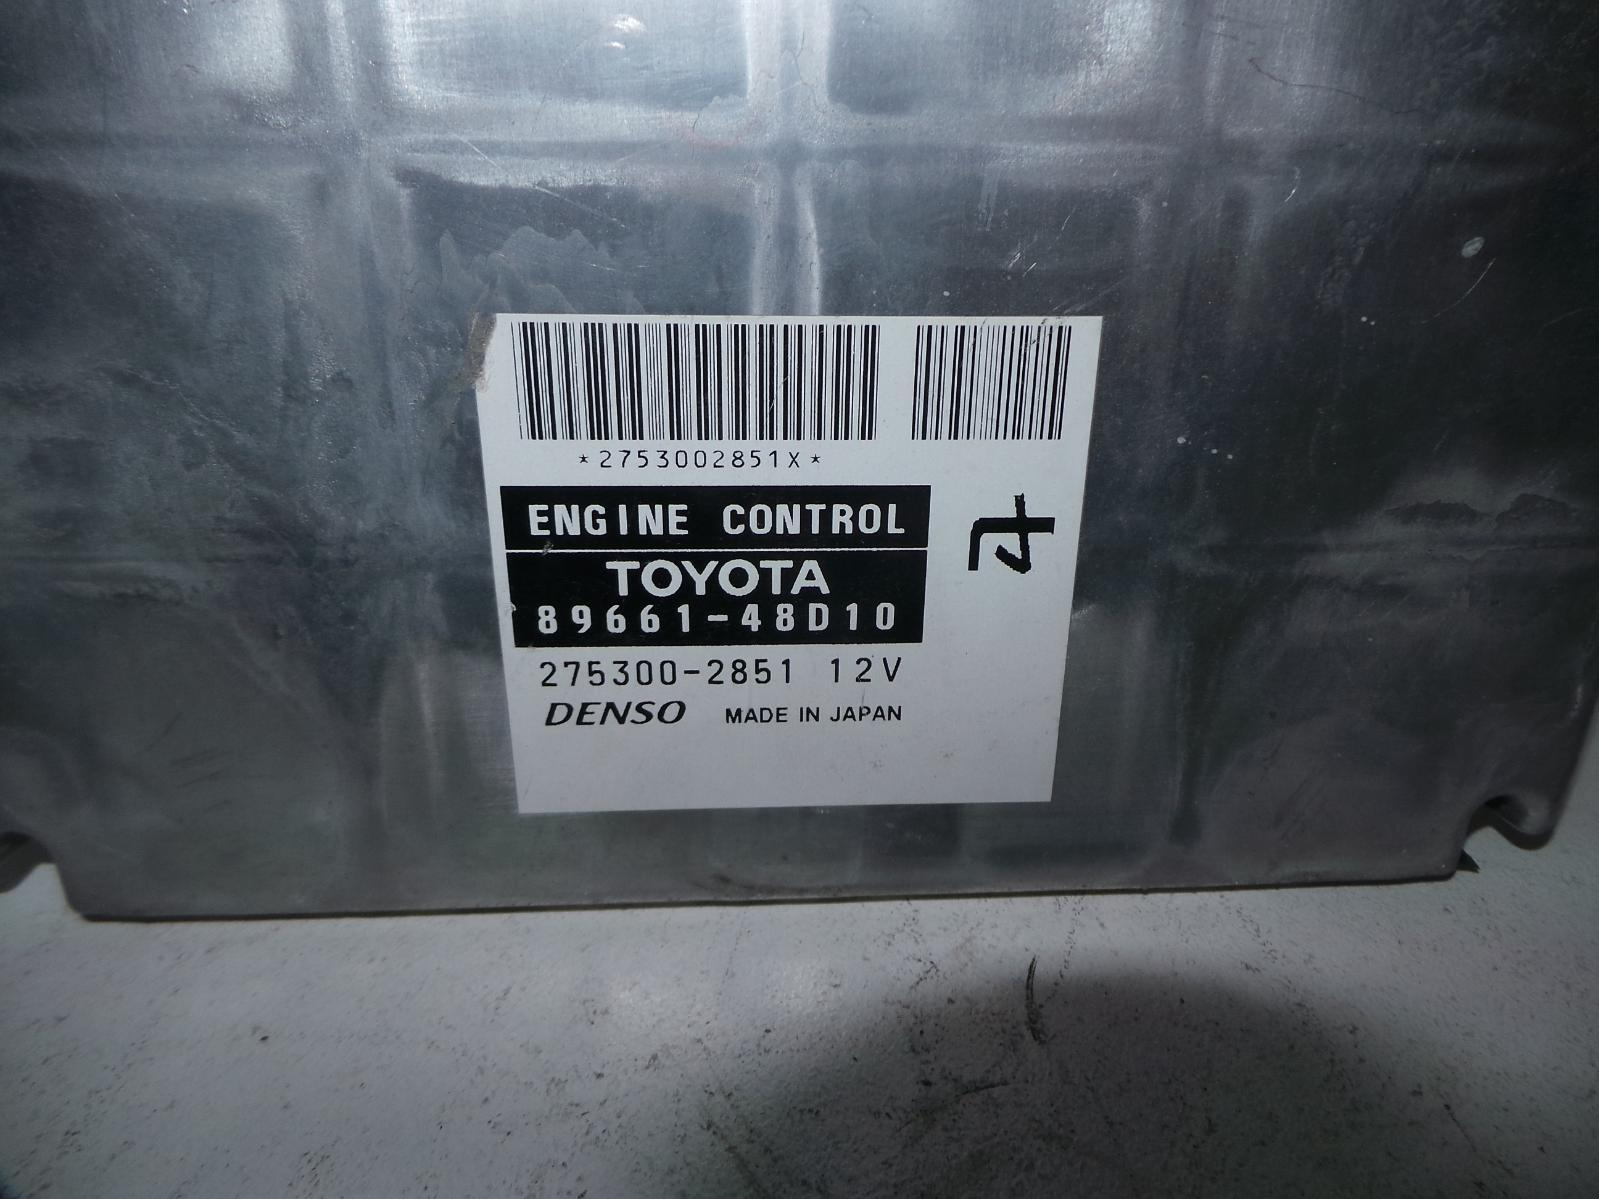 TOYOTA KLUGER, Ecu, ENGINE ECU, 3.5, 2GR-FE, GSU40-GSU45, 89661-48D10, ECU ONLY, 08/07-02/14